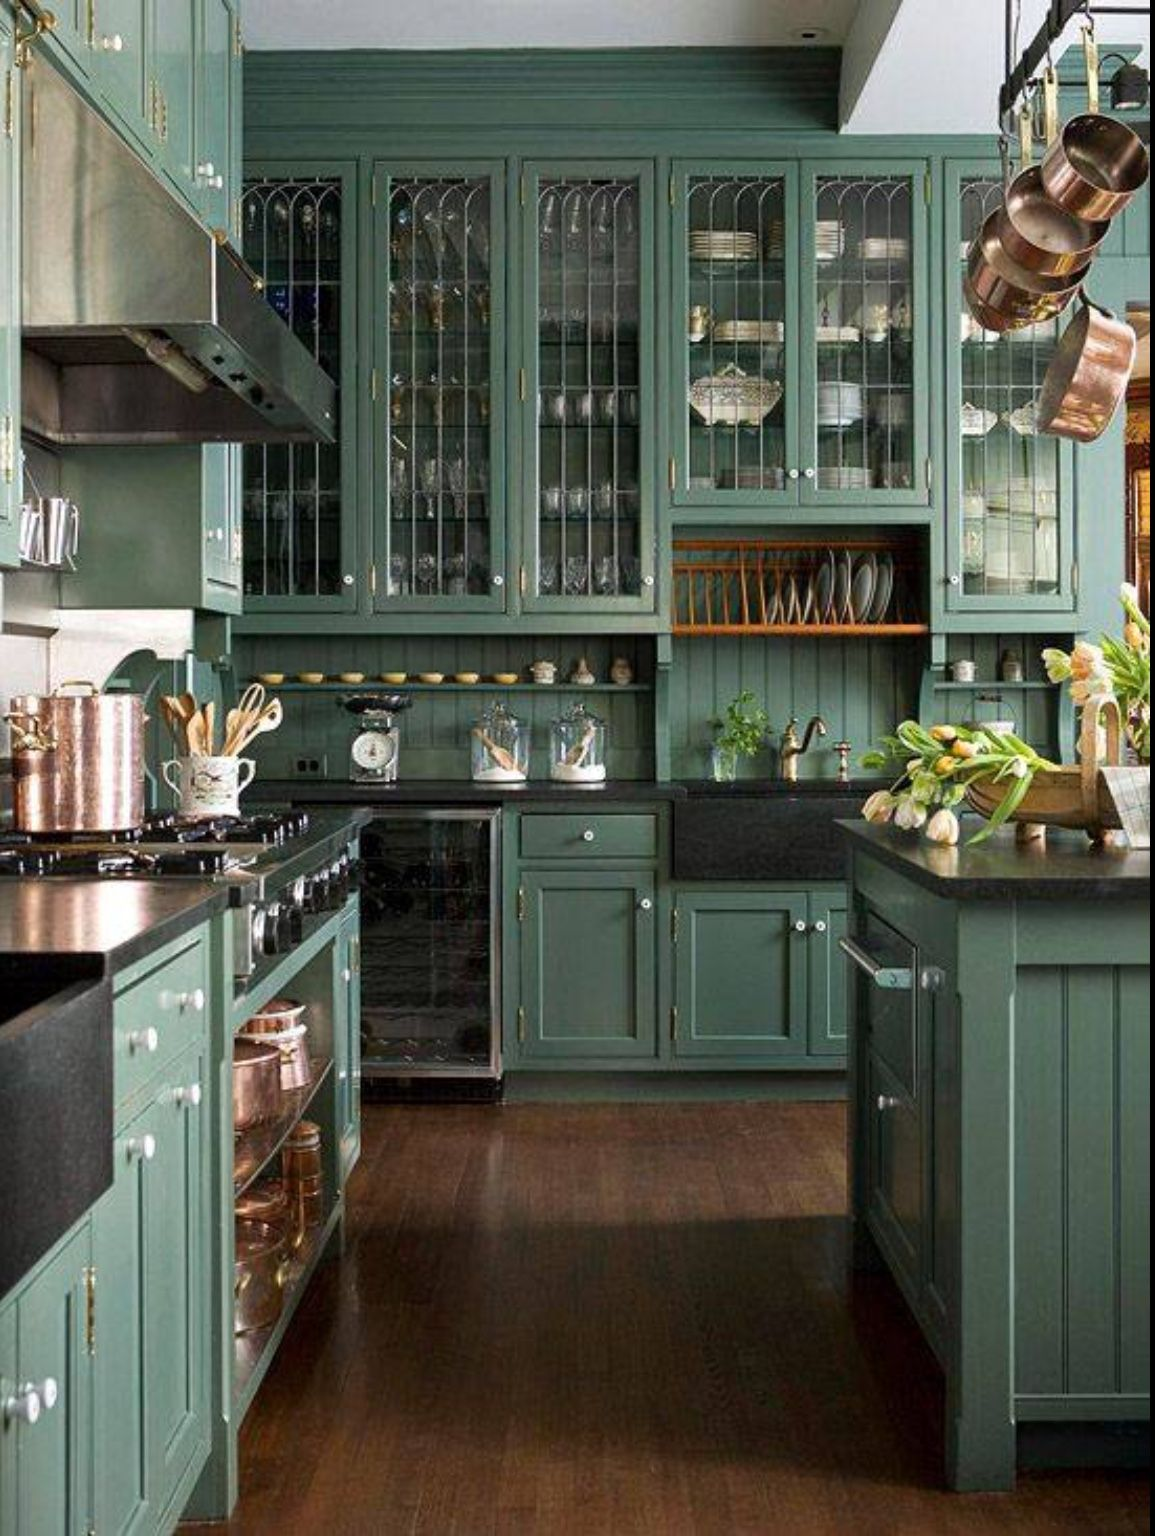 Image by Terry Kessler on Interior design | Home kitchens ...